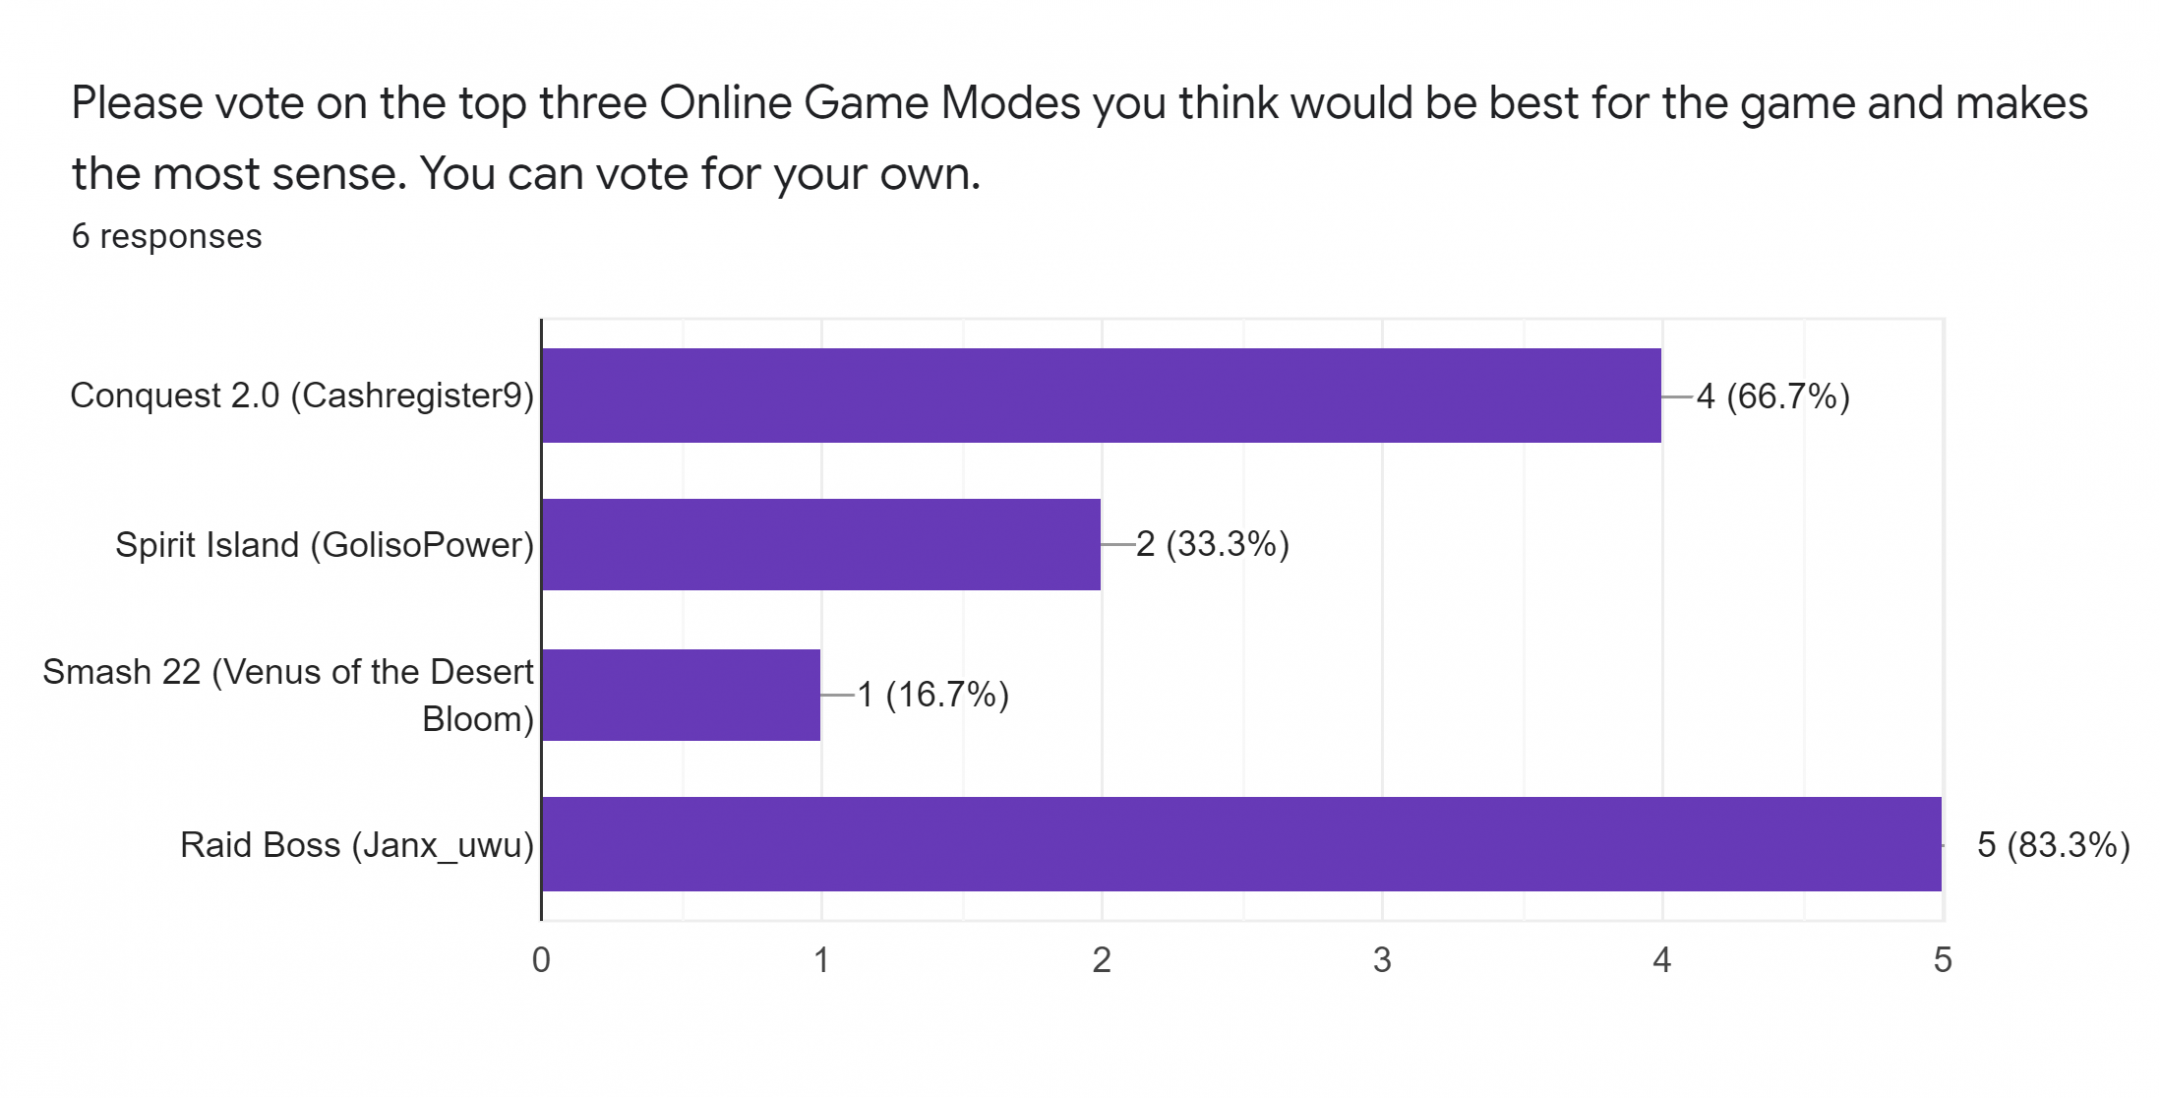 Forms response chart. Question title: Please vote on the top three Online Game Modes you think would be best for the game and makes the most sense. You can vote for your own.. Number of responses: 6 responses.